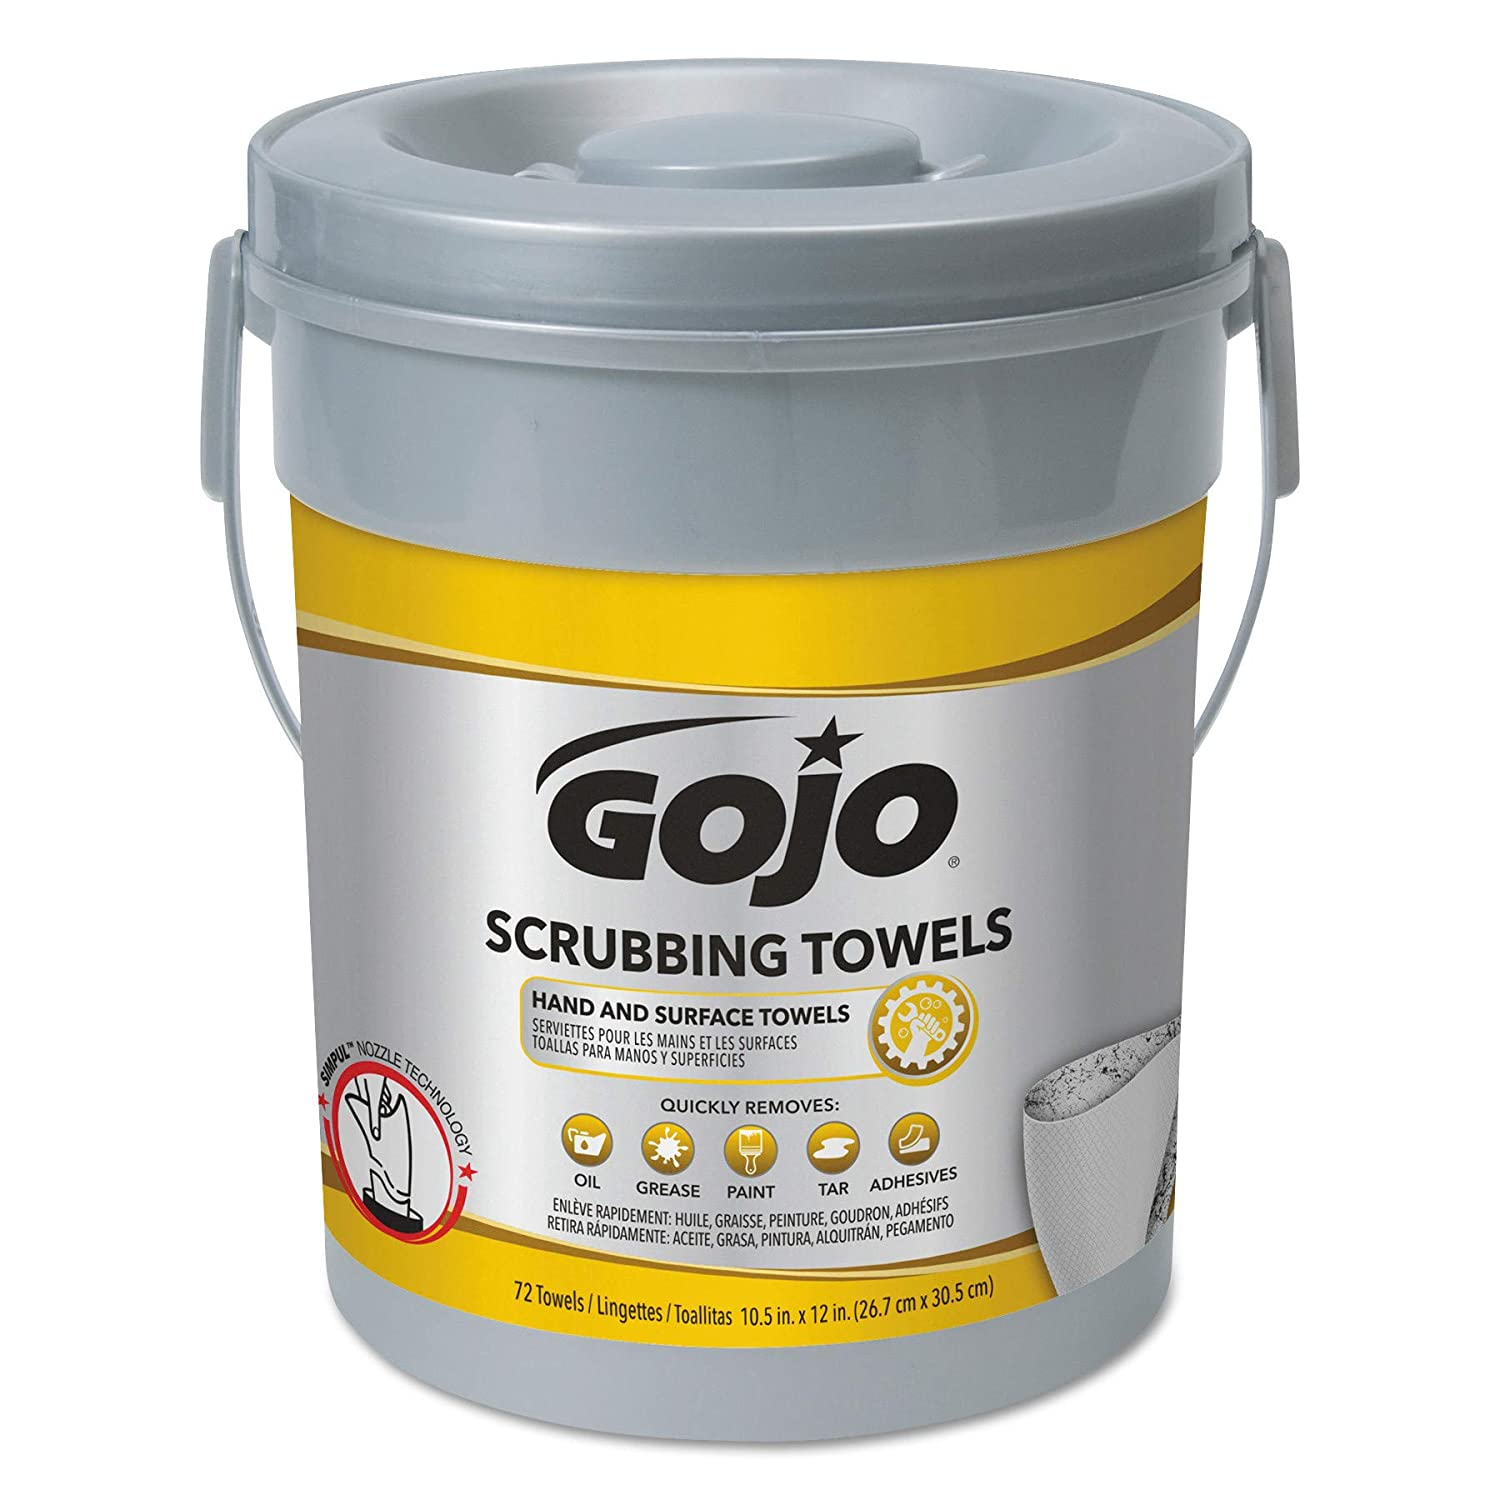 Amazon.com : GOJO 639606 Scrubbing Towels, Hand Cleaning, Fresh Citrus, 10 1/2x12 1/4, 72 Per Canister (Pack of 6) (6 BUCKETS) : Beauty